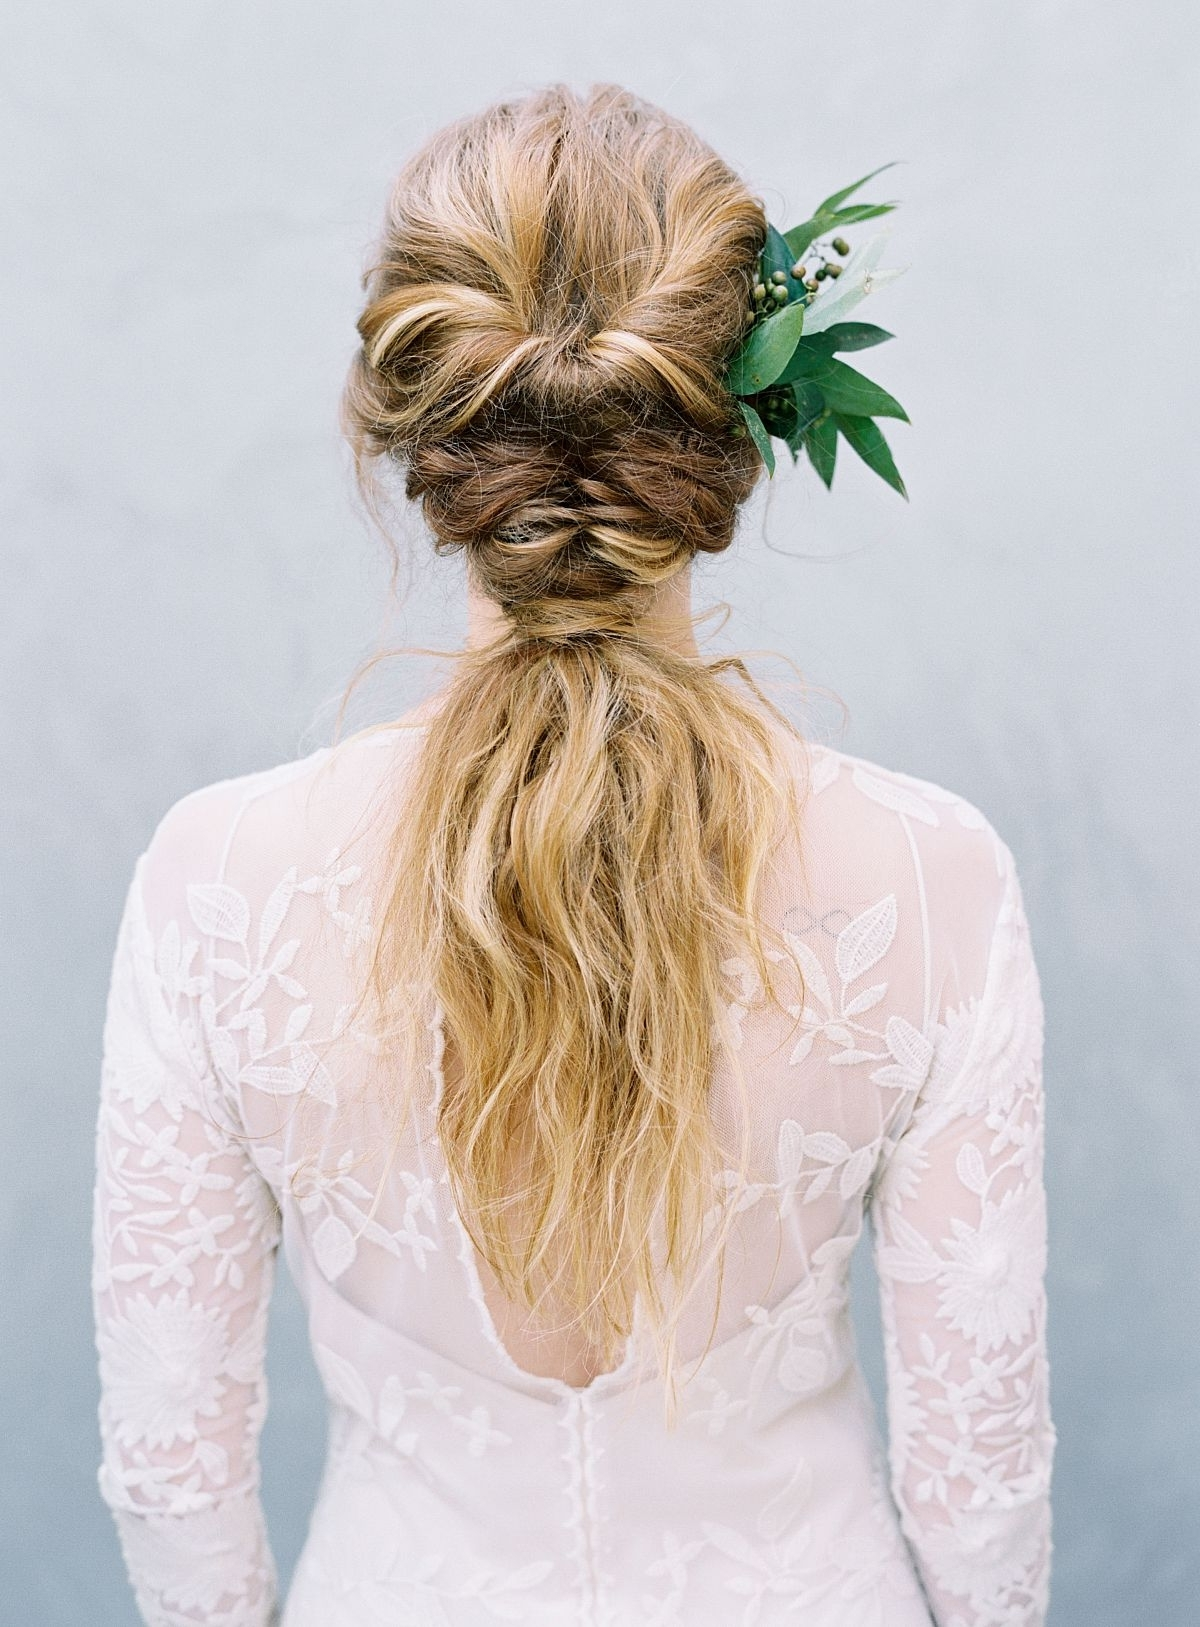 Weddingsonline Within Fashionable Relaxed Wedding Hairstyles (View 12 of 15)